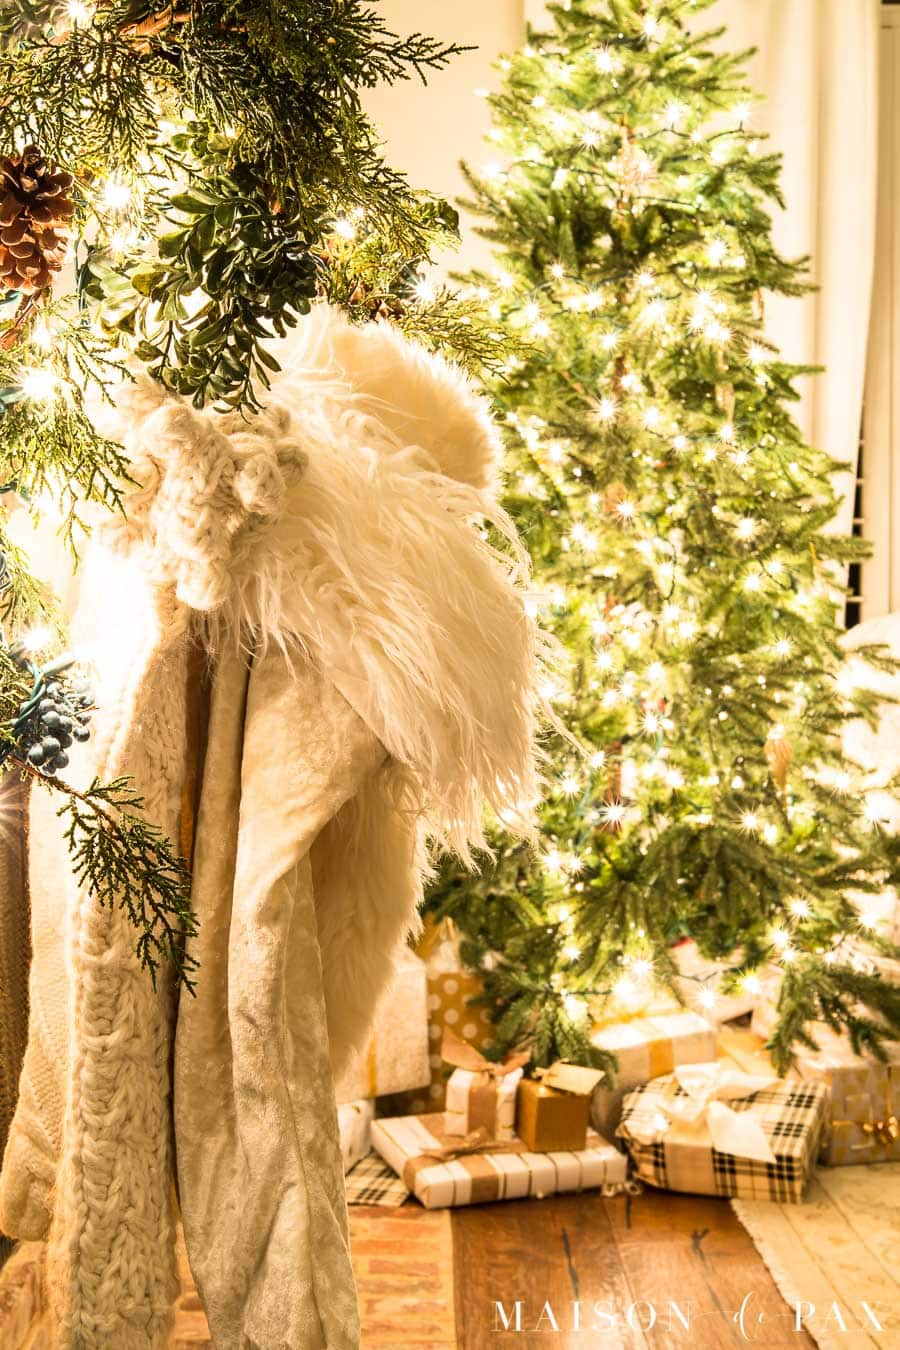 white fur stockings and greenery by tree with lights | Maison de Pax